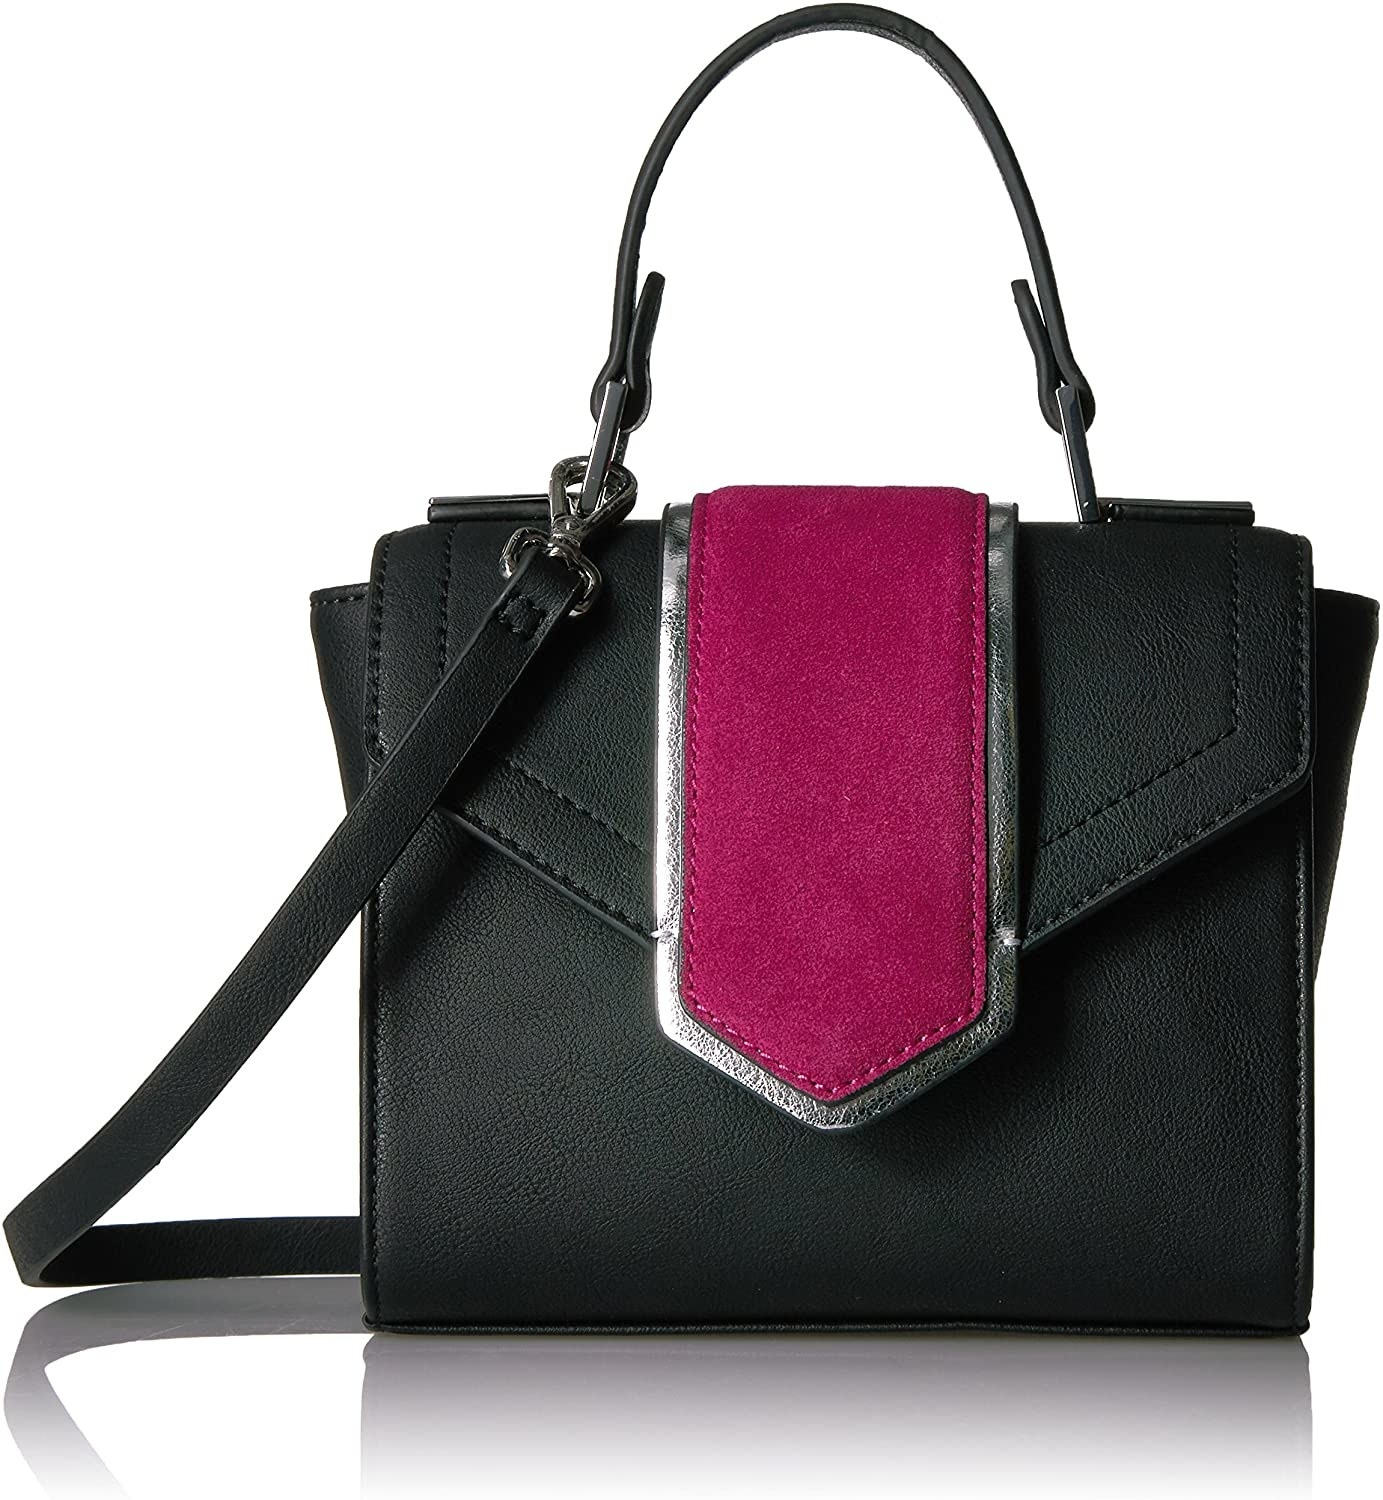 The black bag with a pink and silver detail on the flap and both a top handle and long strap